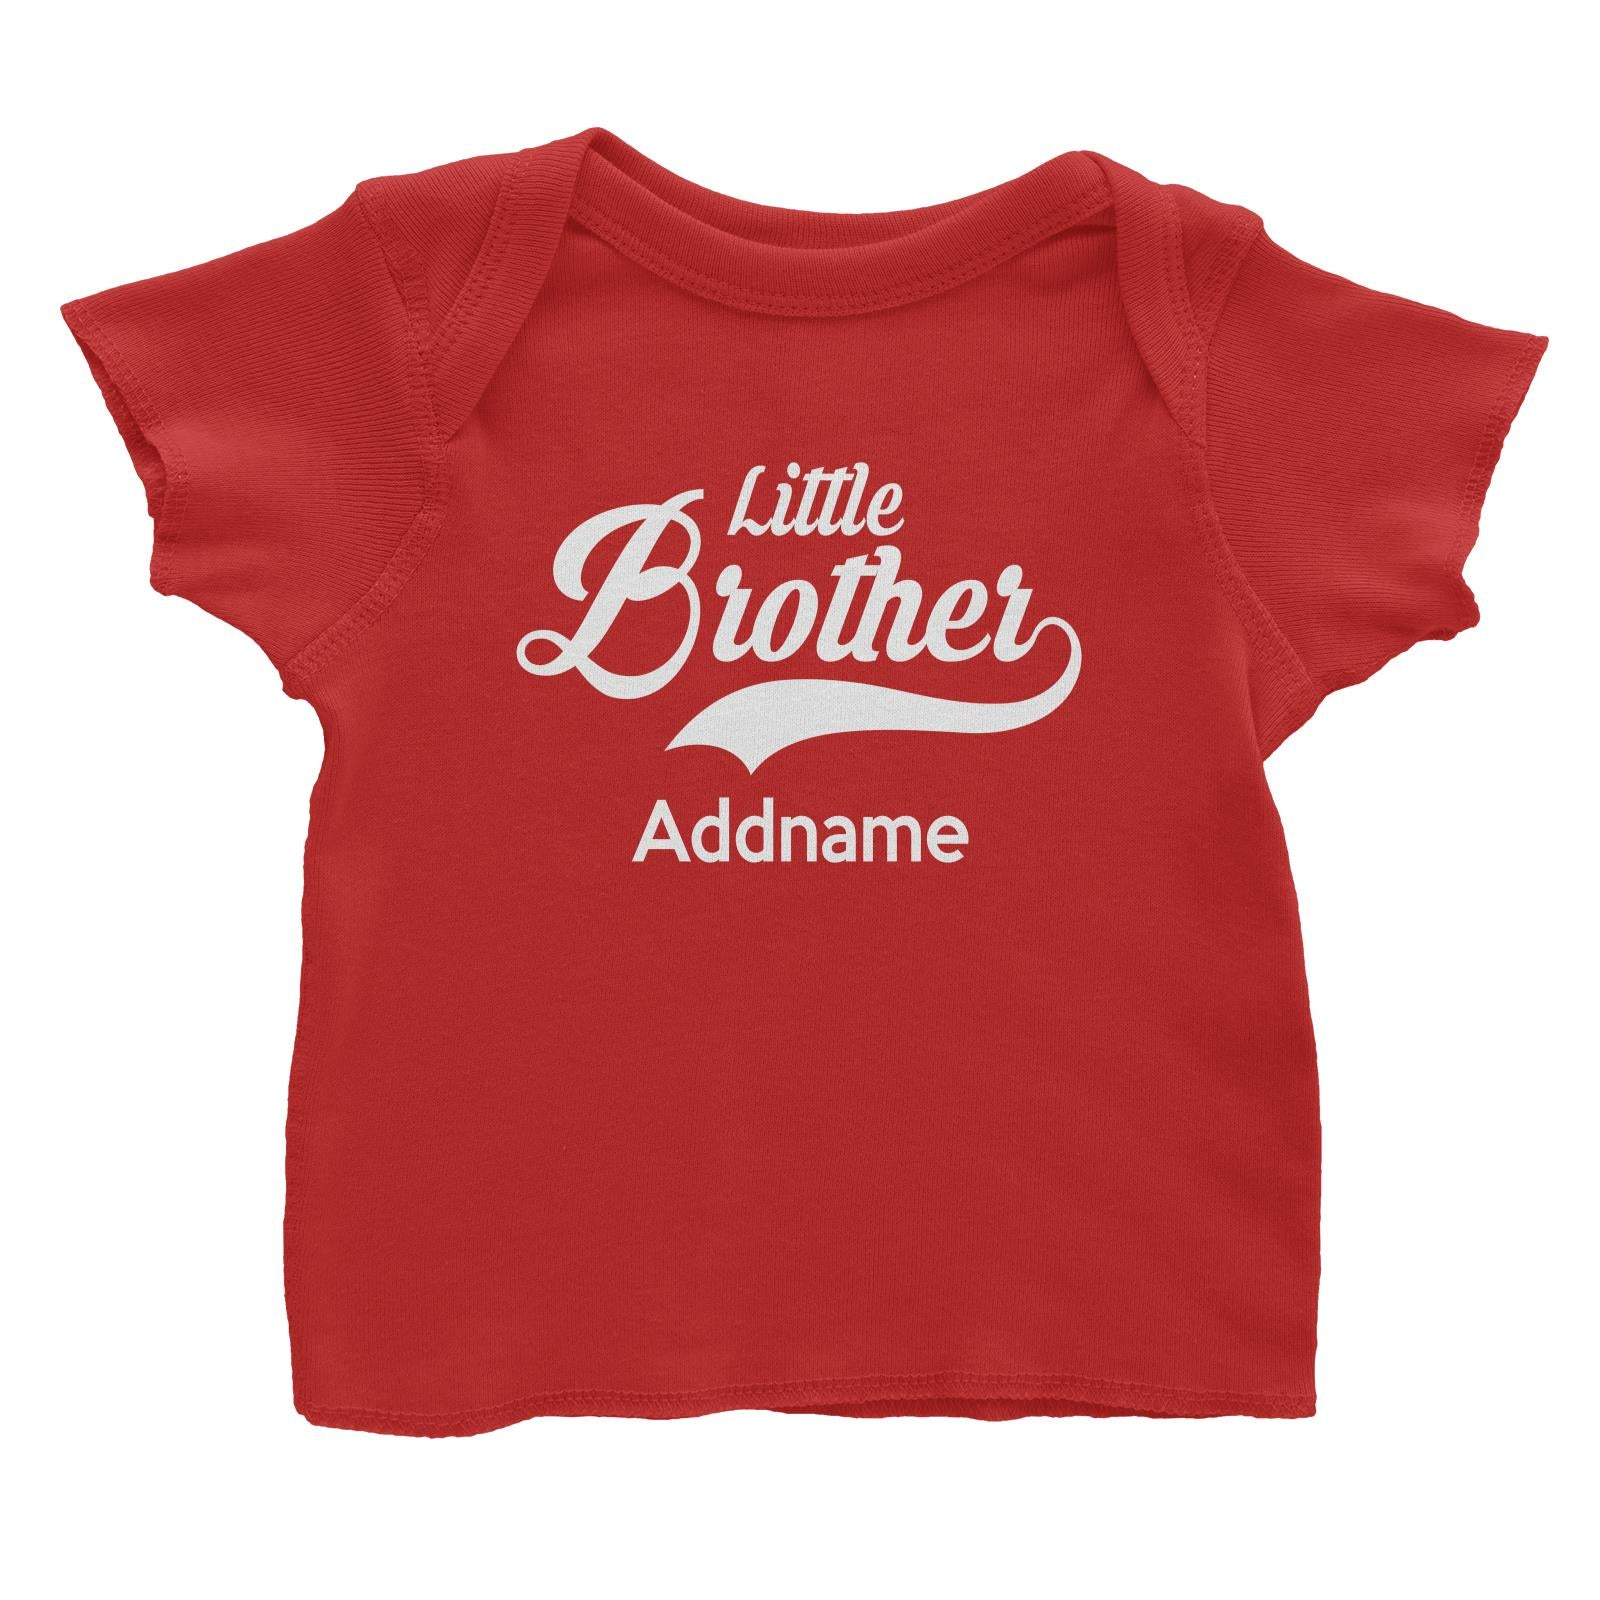 Retro Little Brother Addname Baby T-Shirt